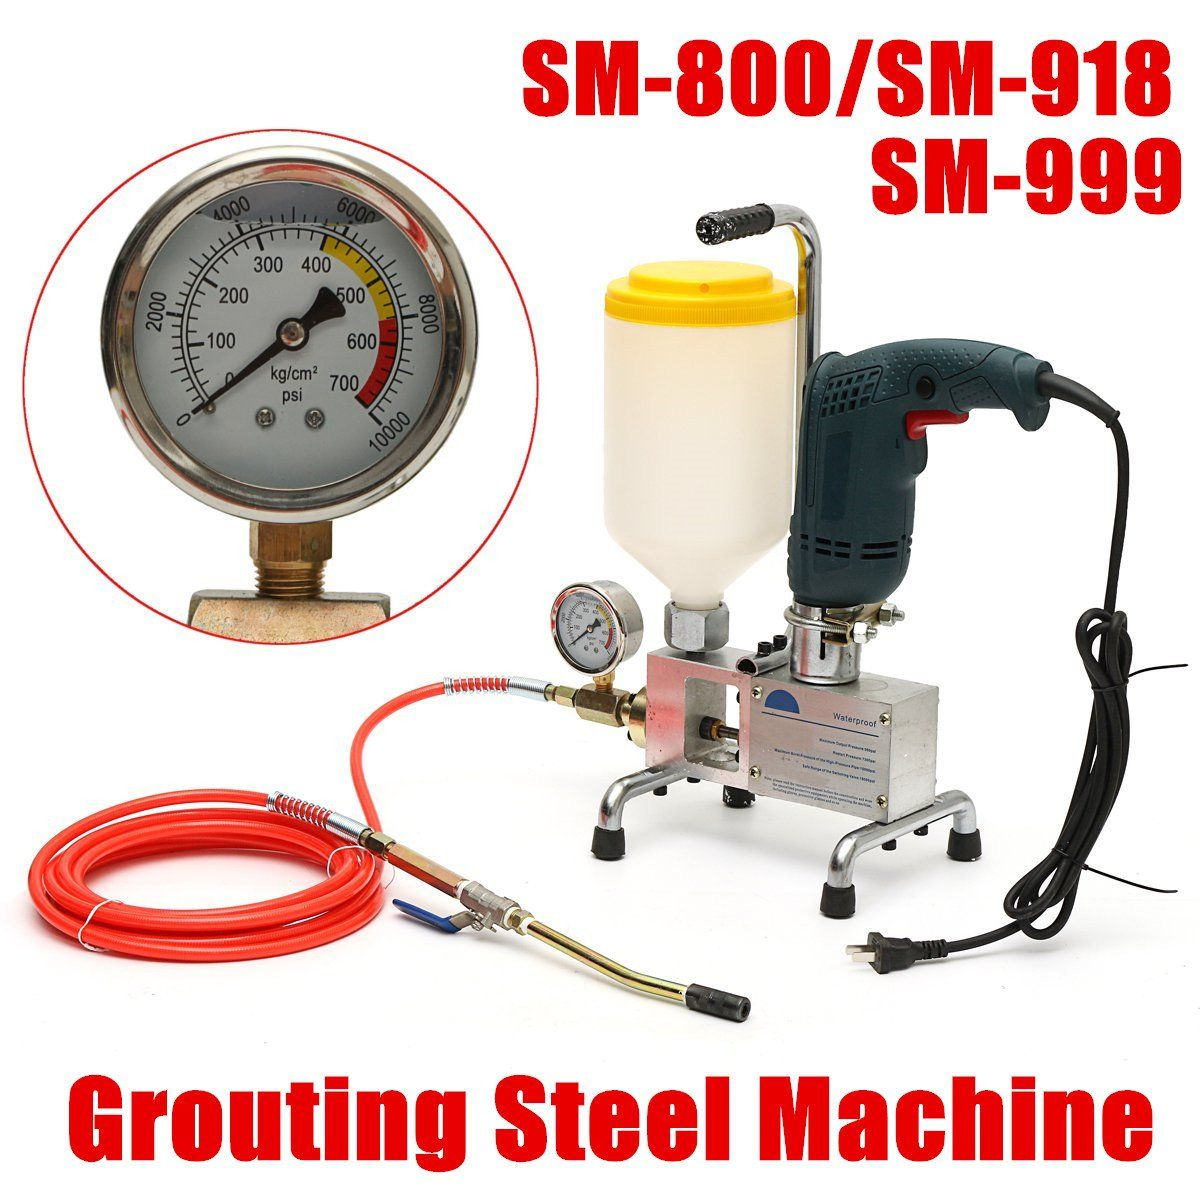 epoxy injection pump Epoxy / Polyurethane foam Grouting Machine STEEL HOSE concrete repair crack New Arrival